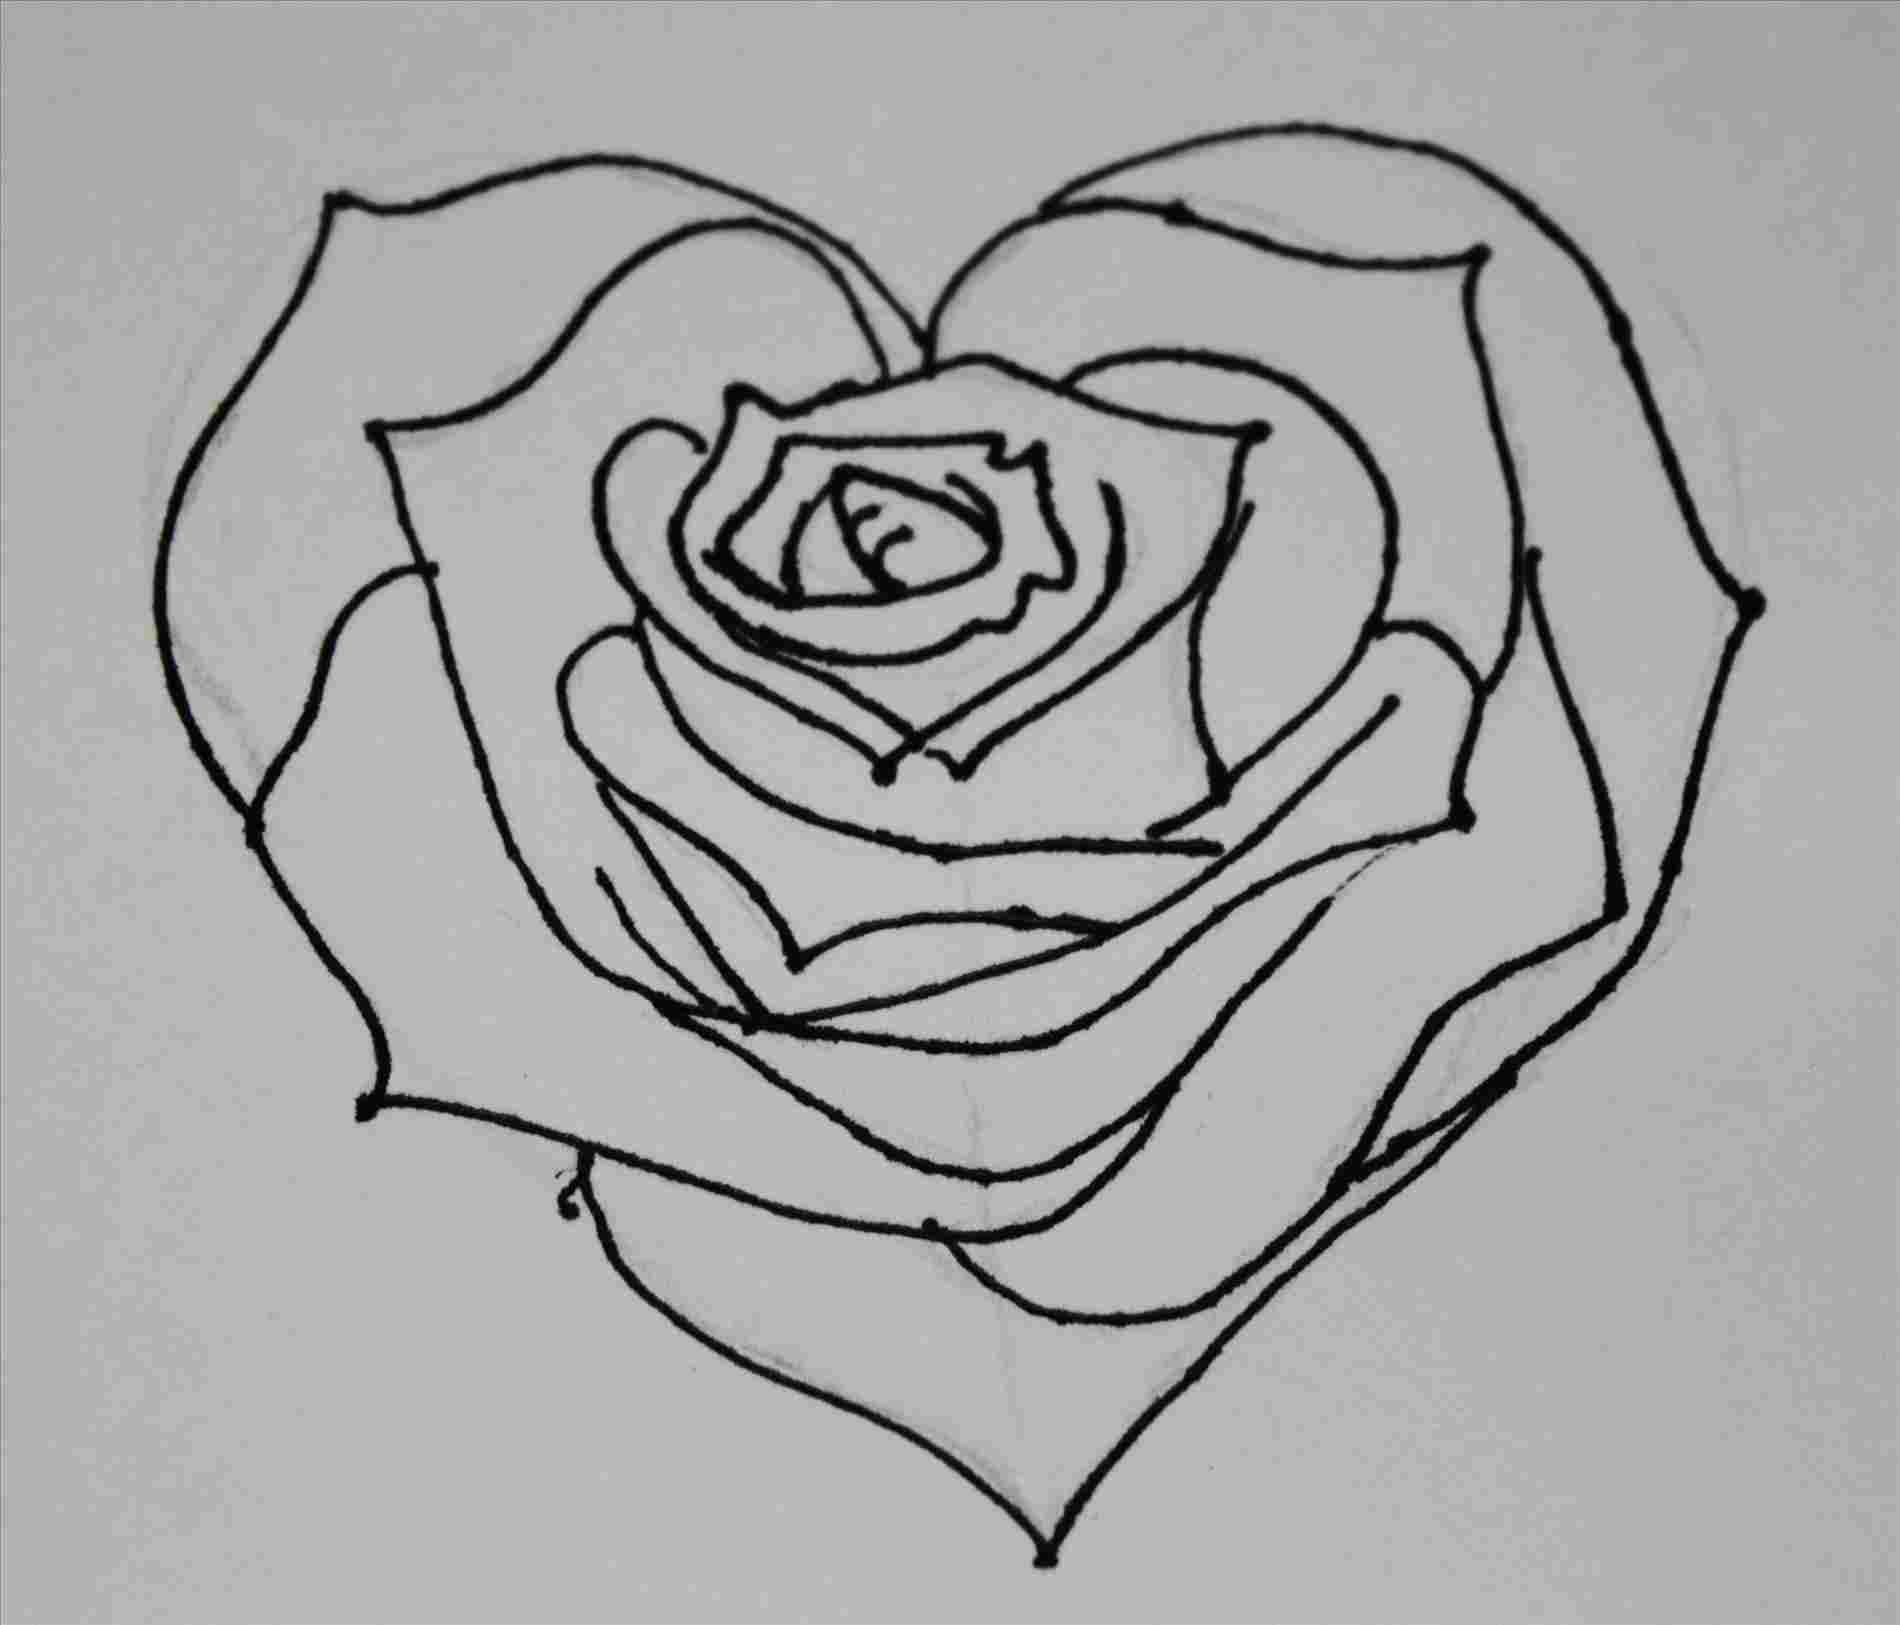 Pencil Sketches Of Hearts And Roses Chelss Chapman